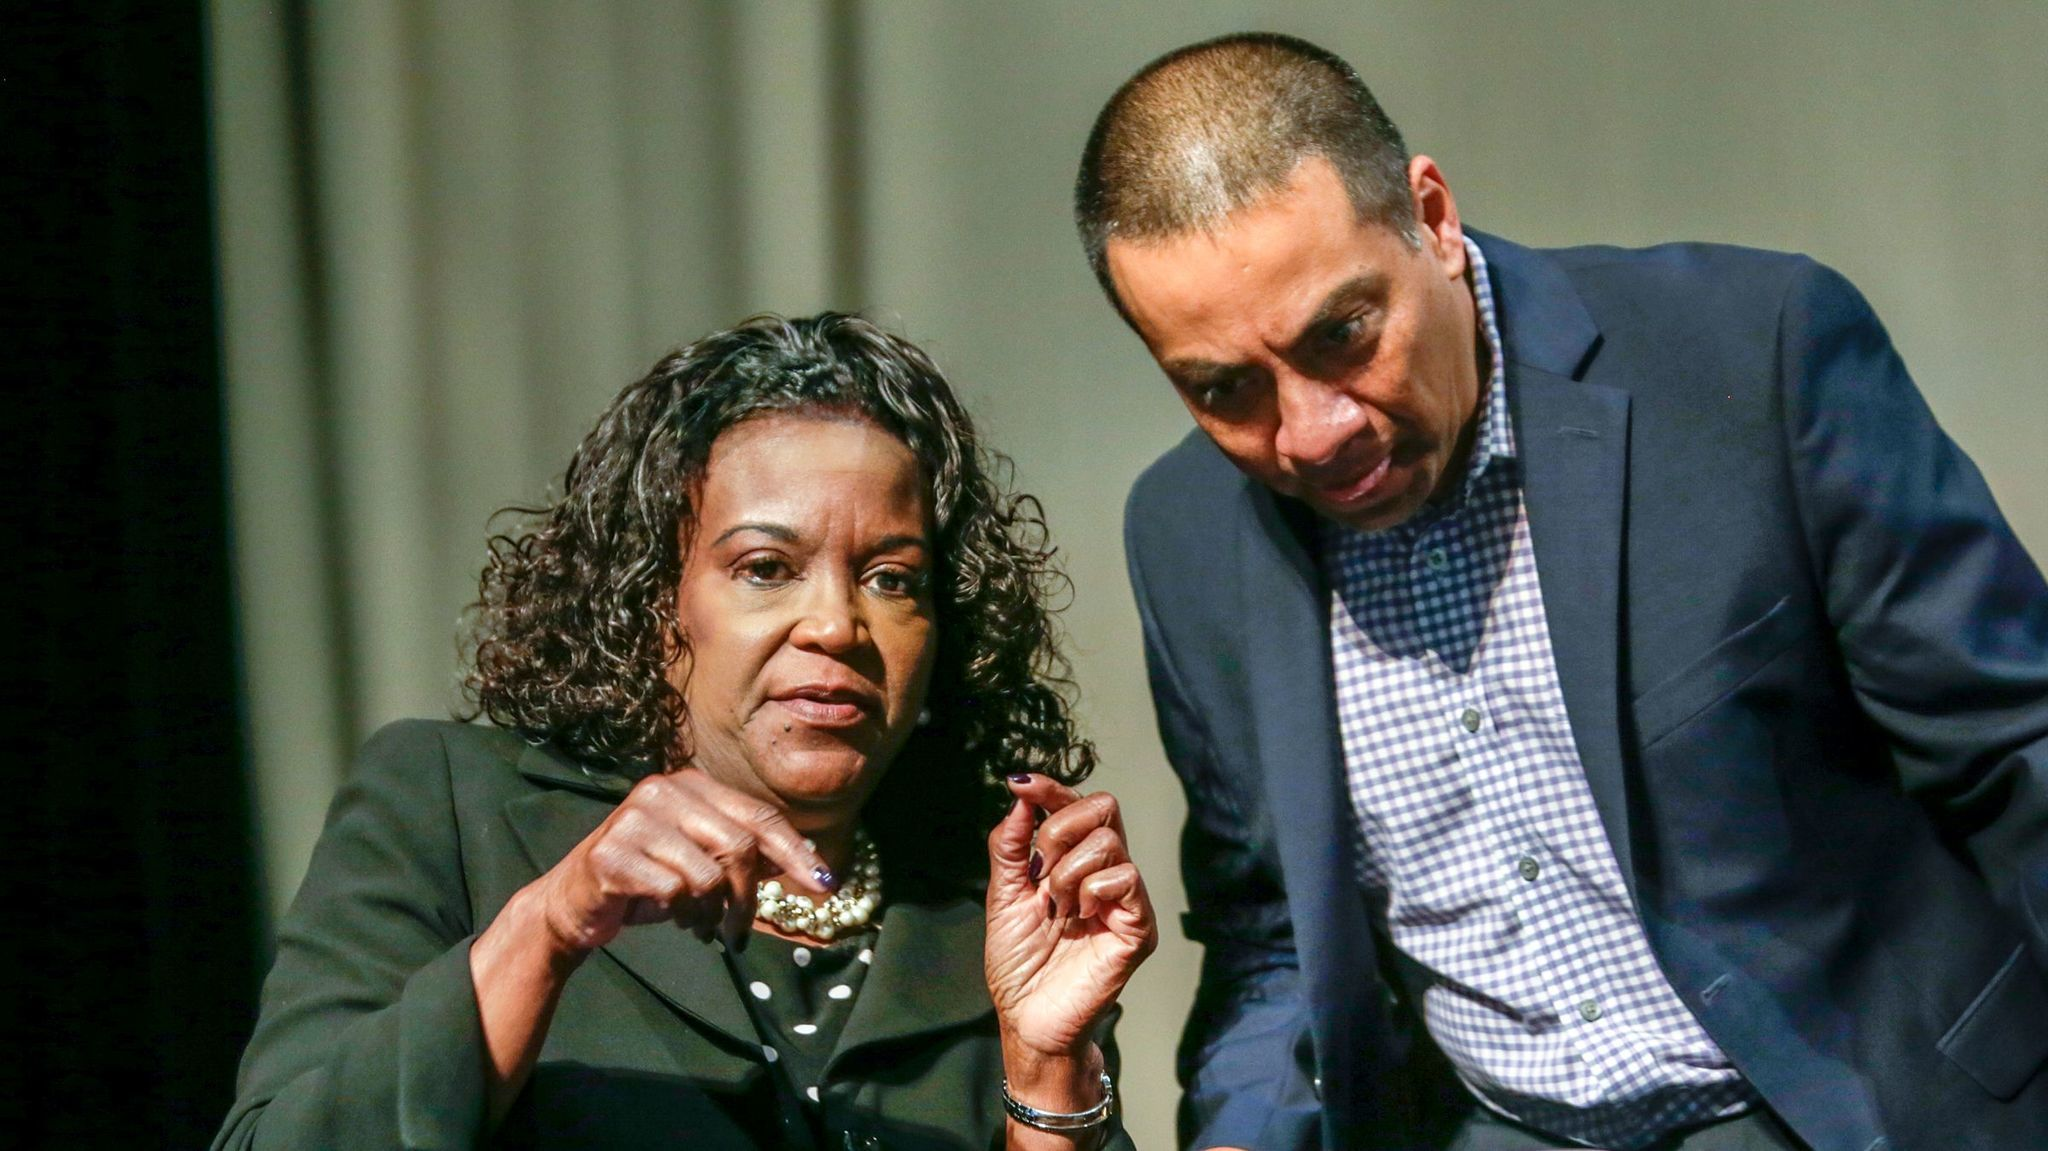 Ref Rodriguez confers with L.A. schools Supt. Michelle King at a forum for school leaders in 2016.